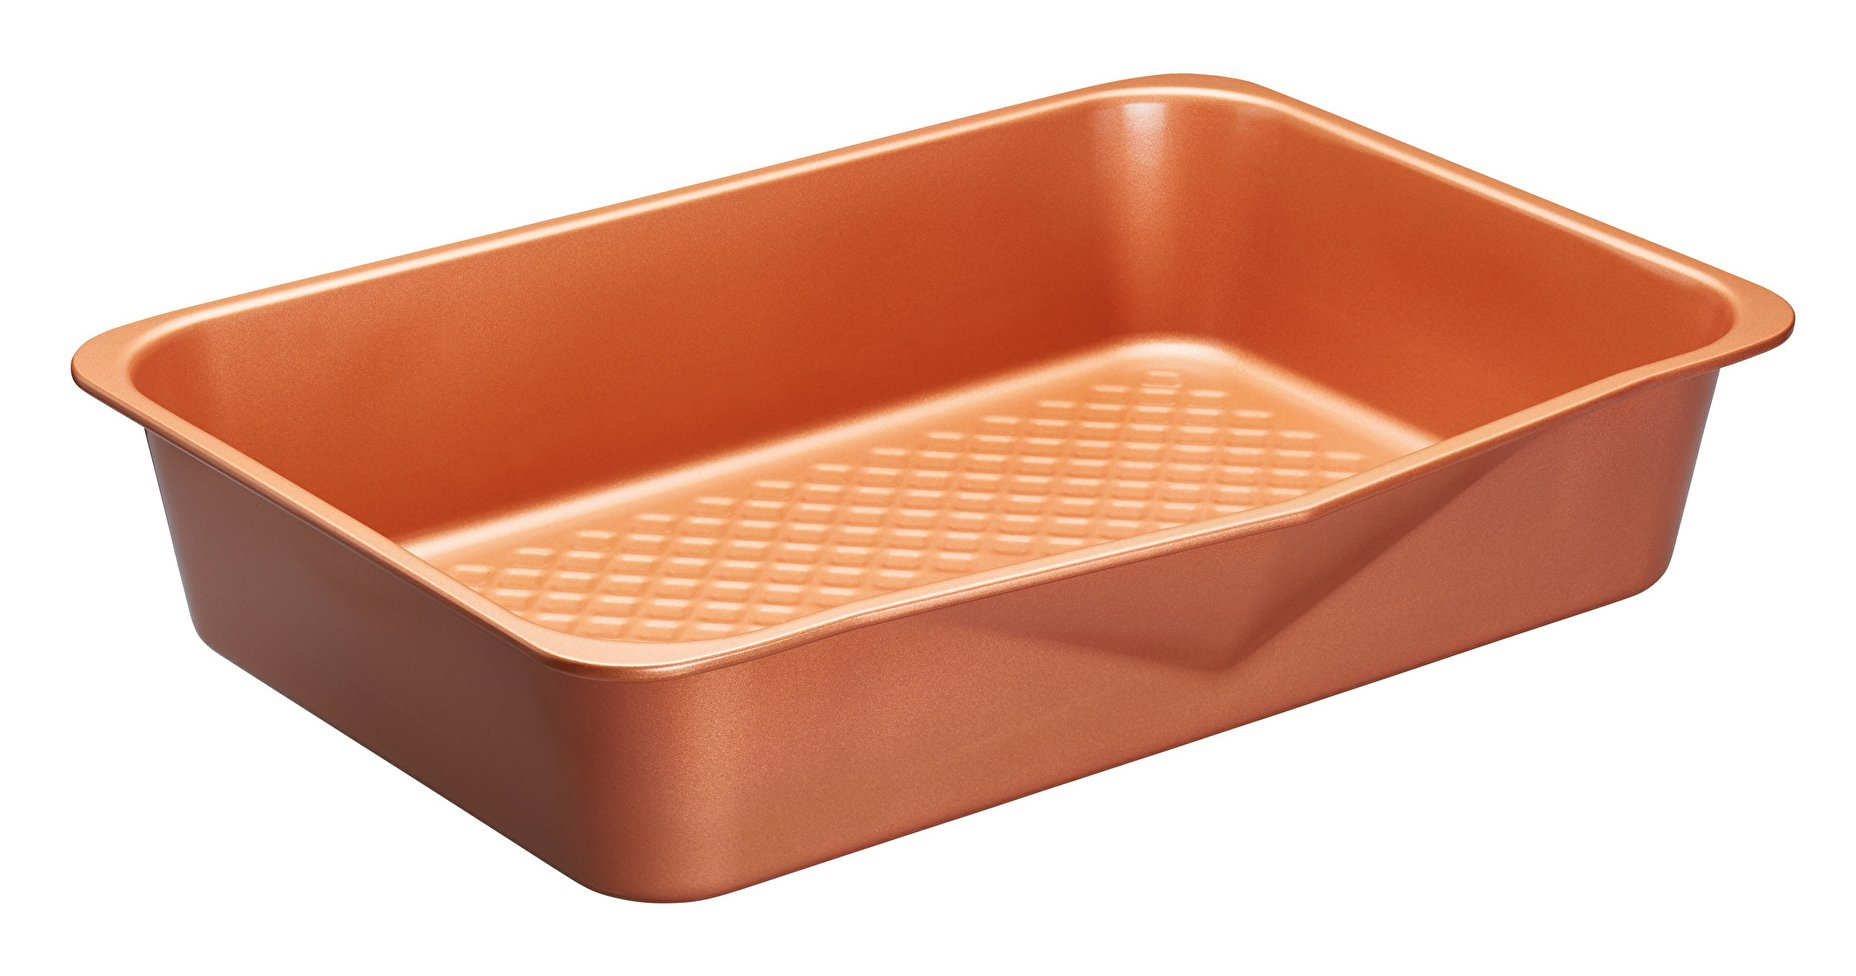 Kochen & Genießen Masterclass Smart Ceramic 42.5 X 31.5 Cm Heavy-duty Stackable Roasting Pan Set